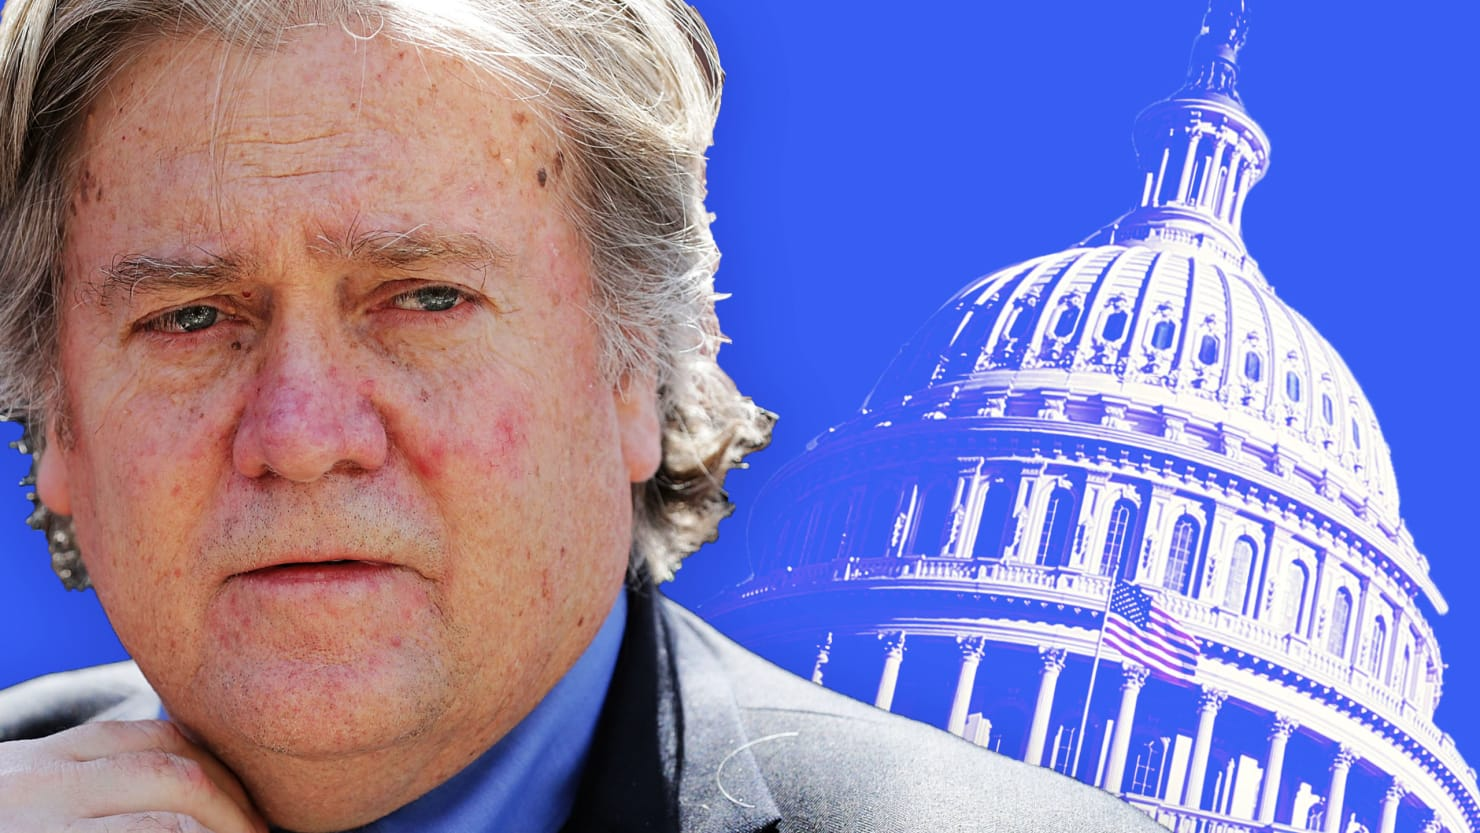 Does Steve Bannon Want the Democrats to Take Congress?